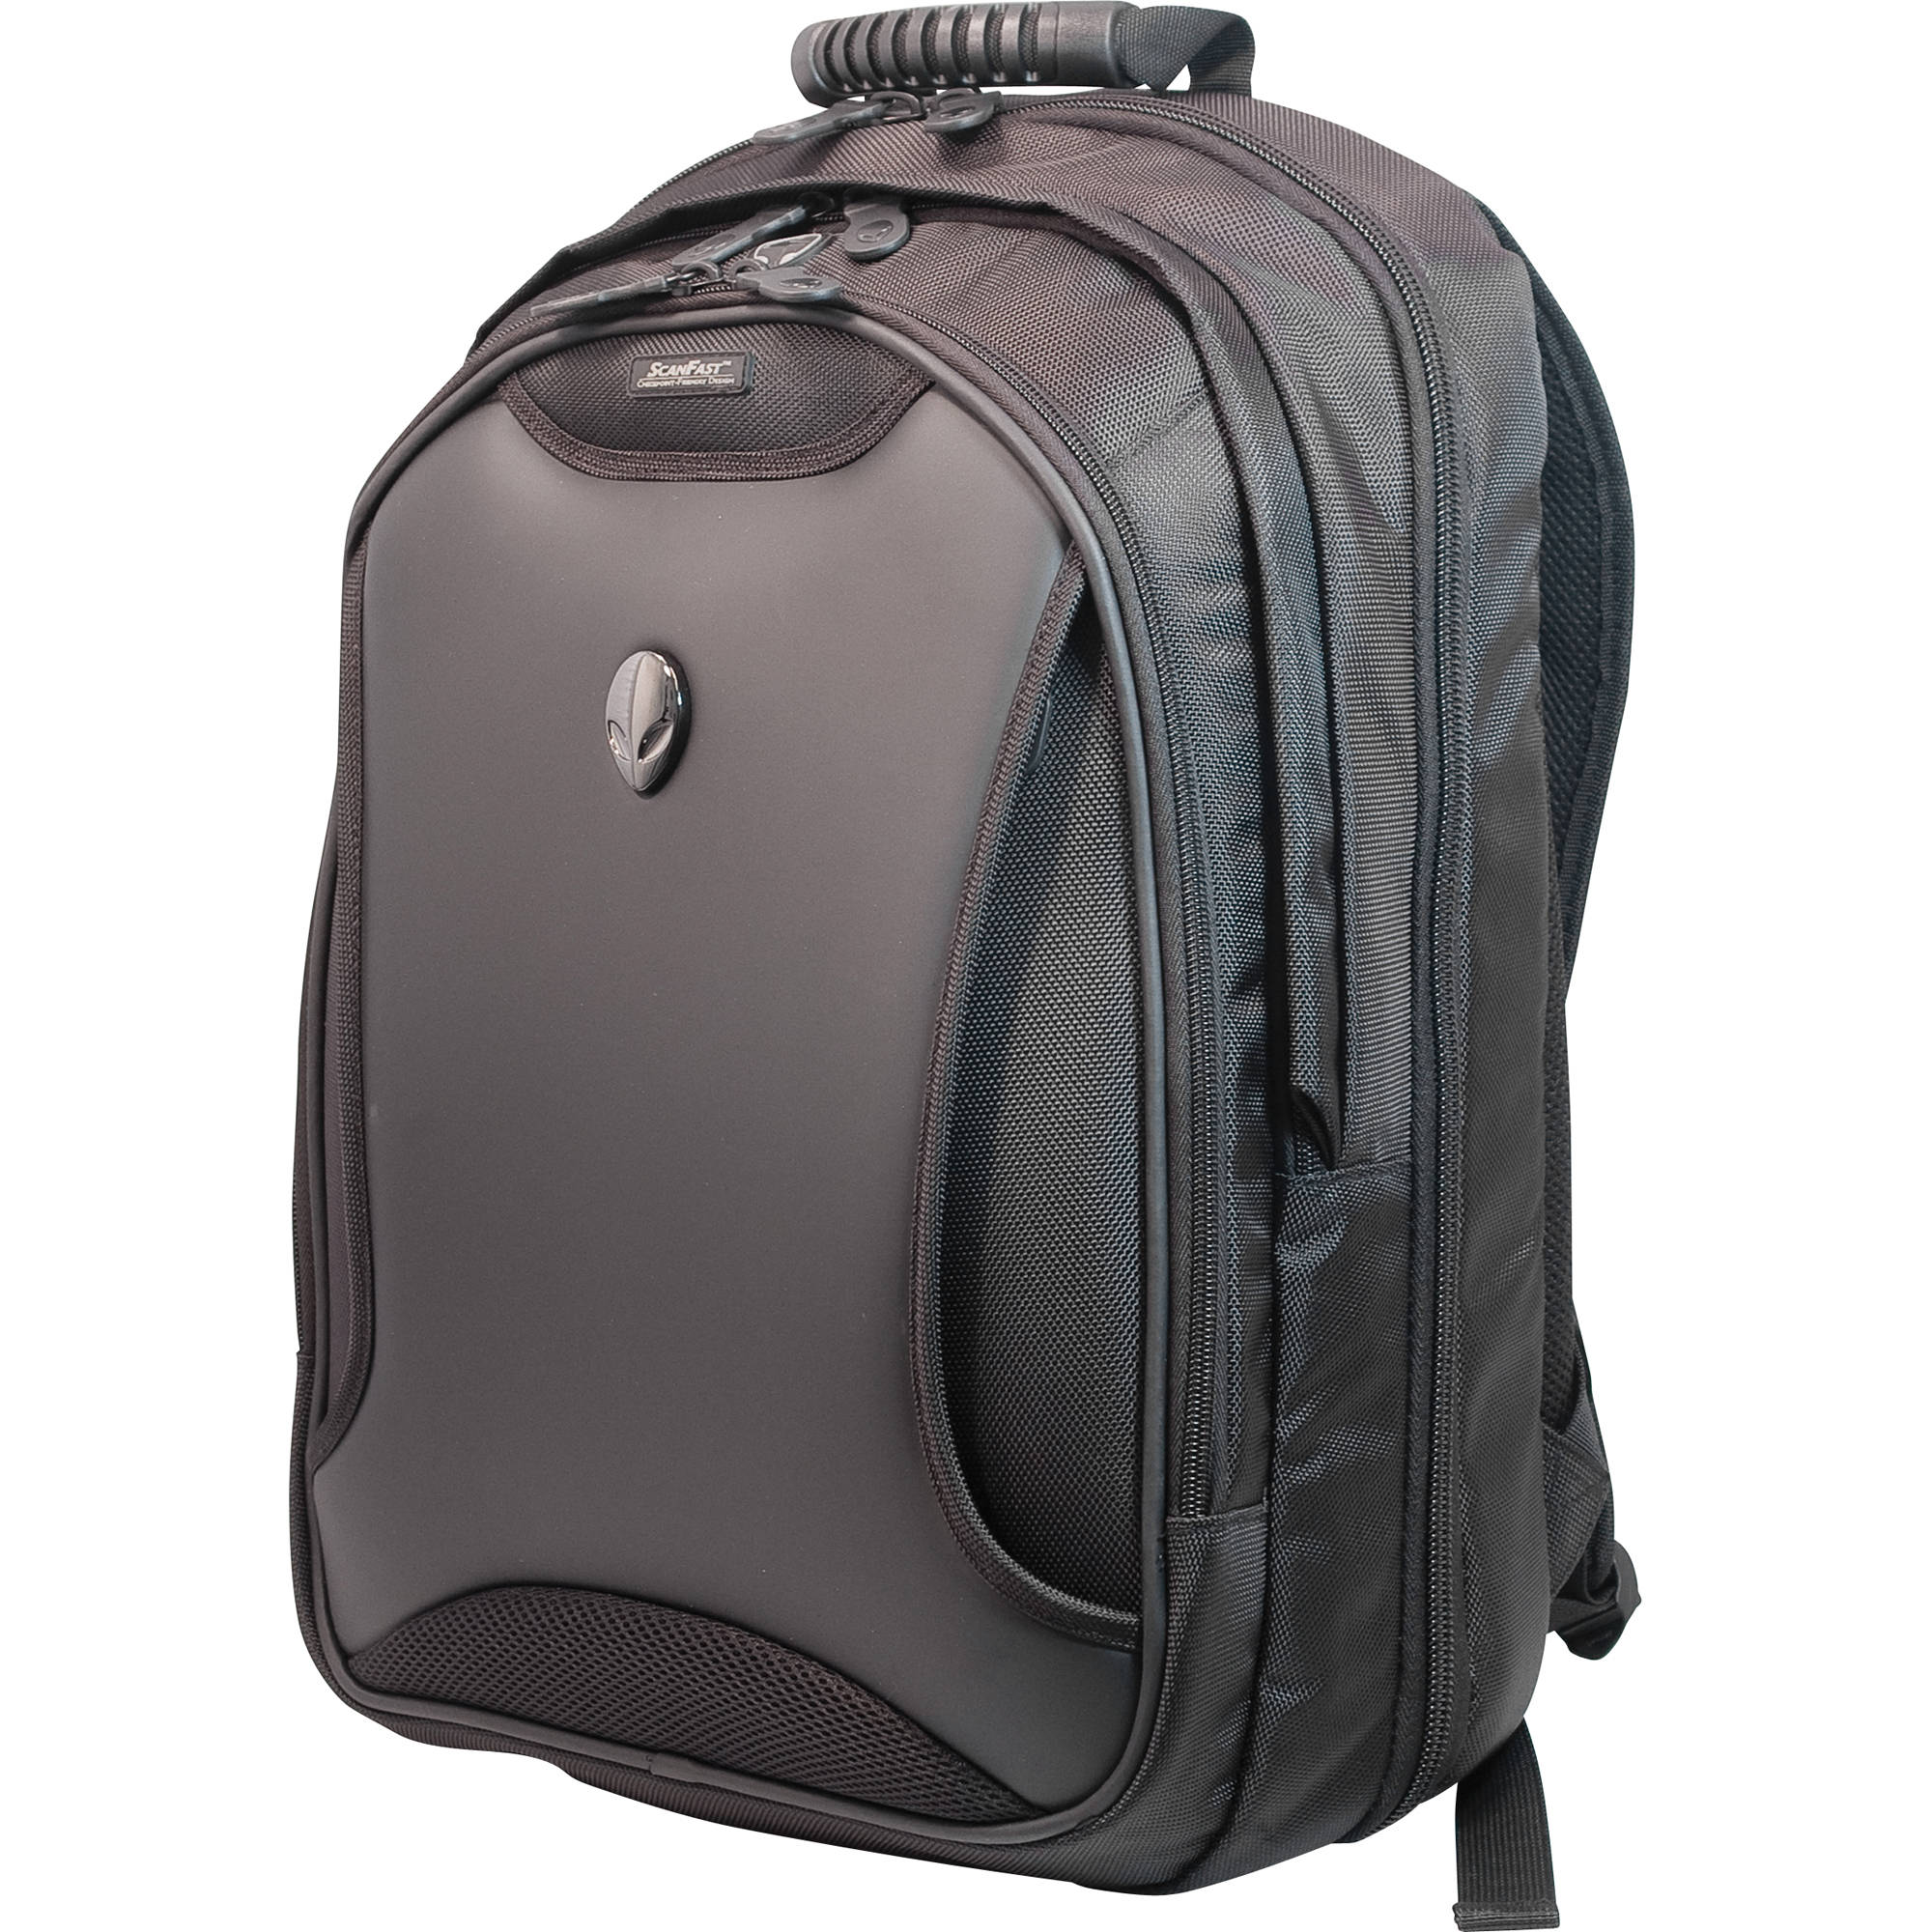 Alienware Orion M17x Backpack